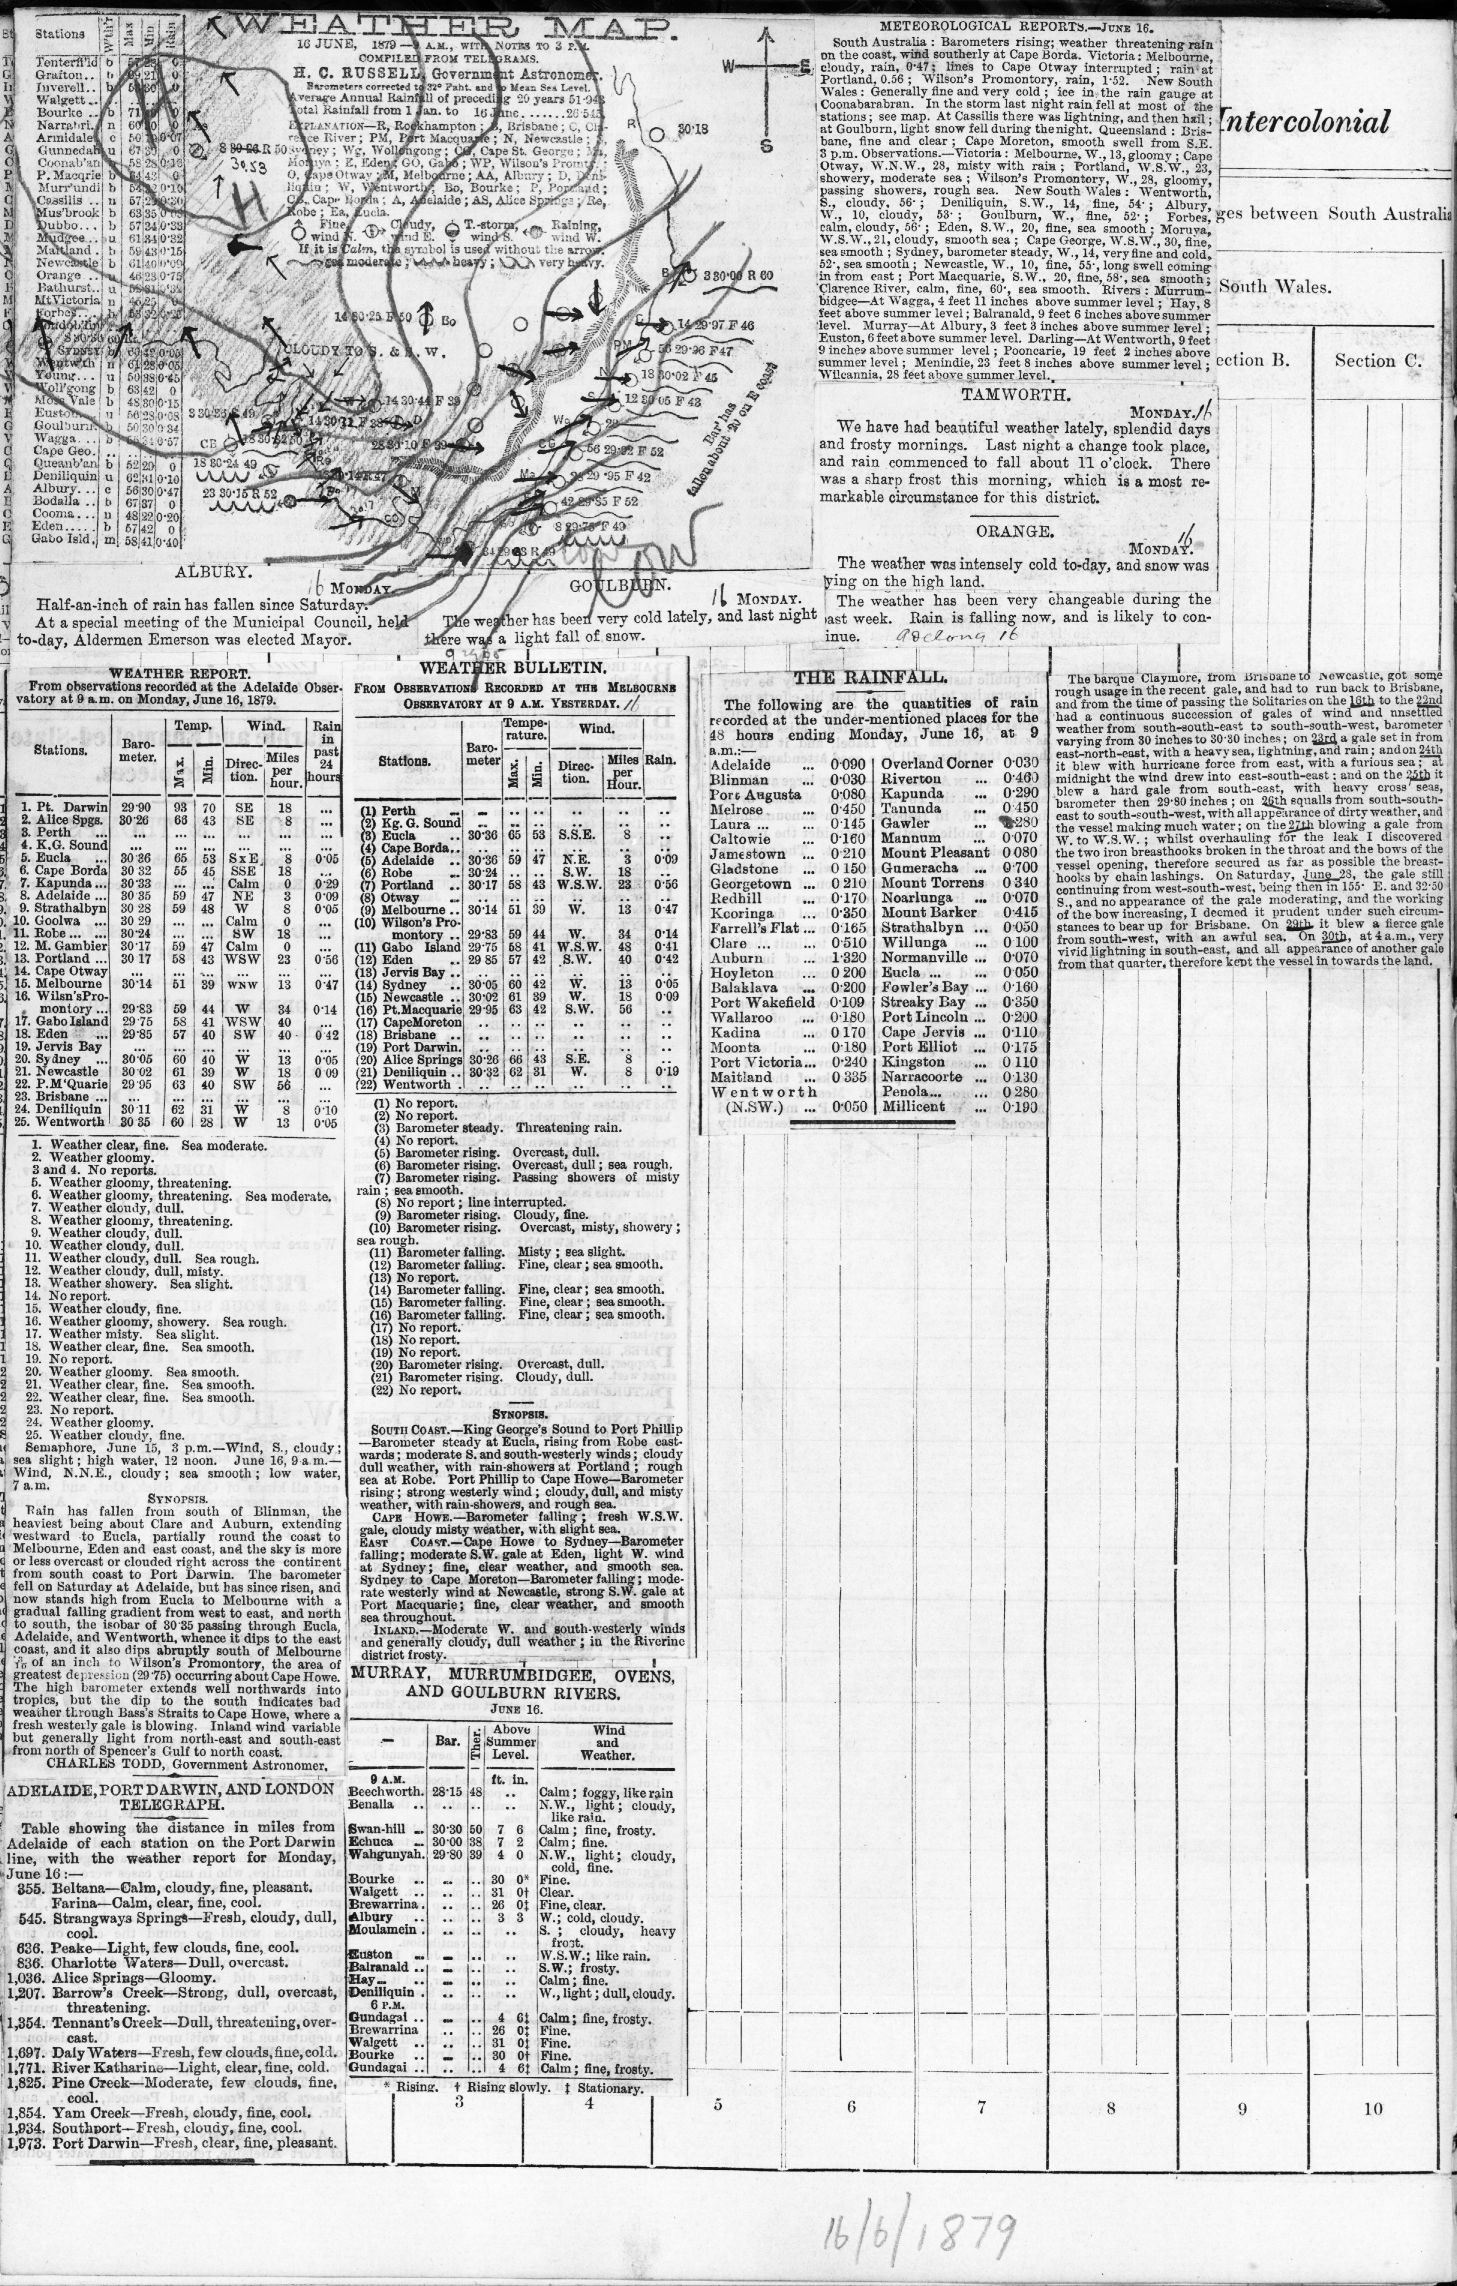 18790616t01 Weather map